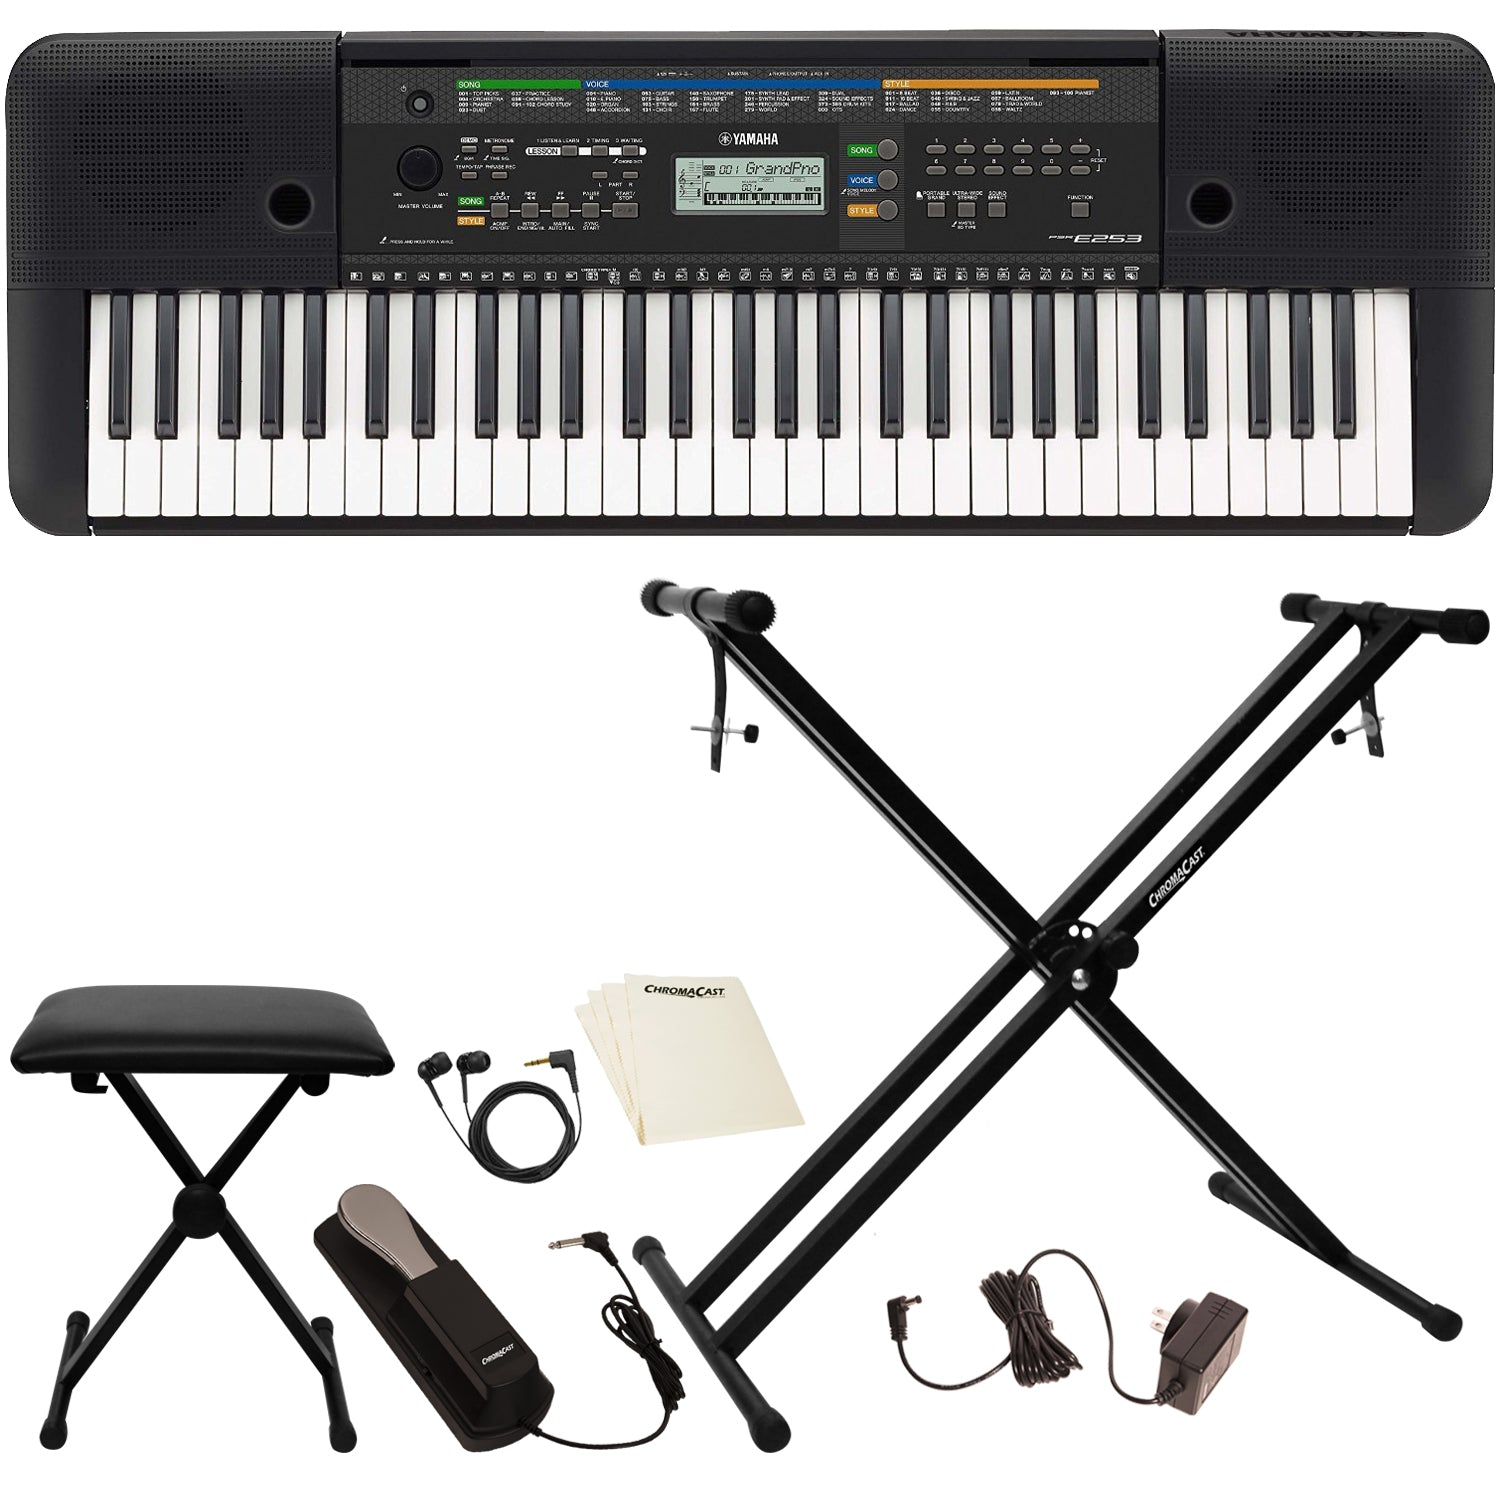 Yamaha Psre253 61 Key Portable Keyboard With Accessories